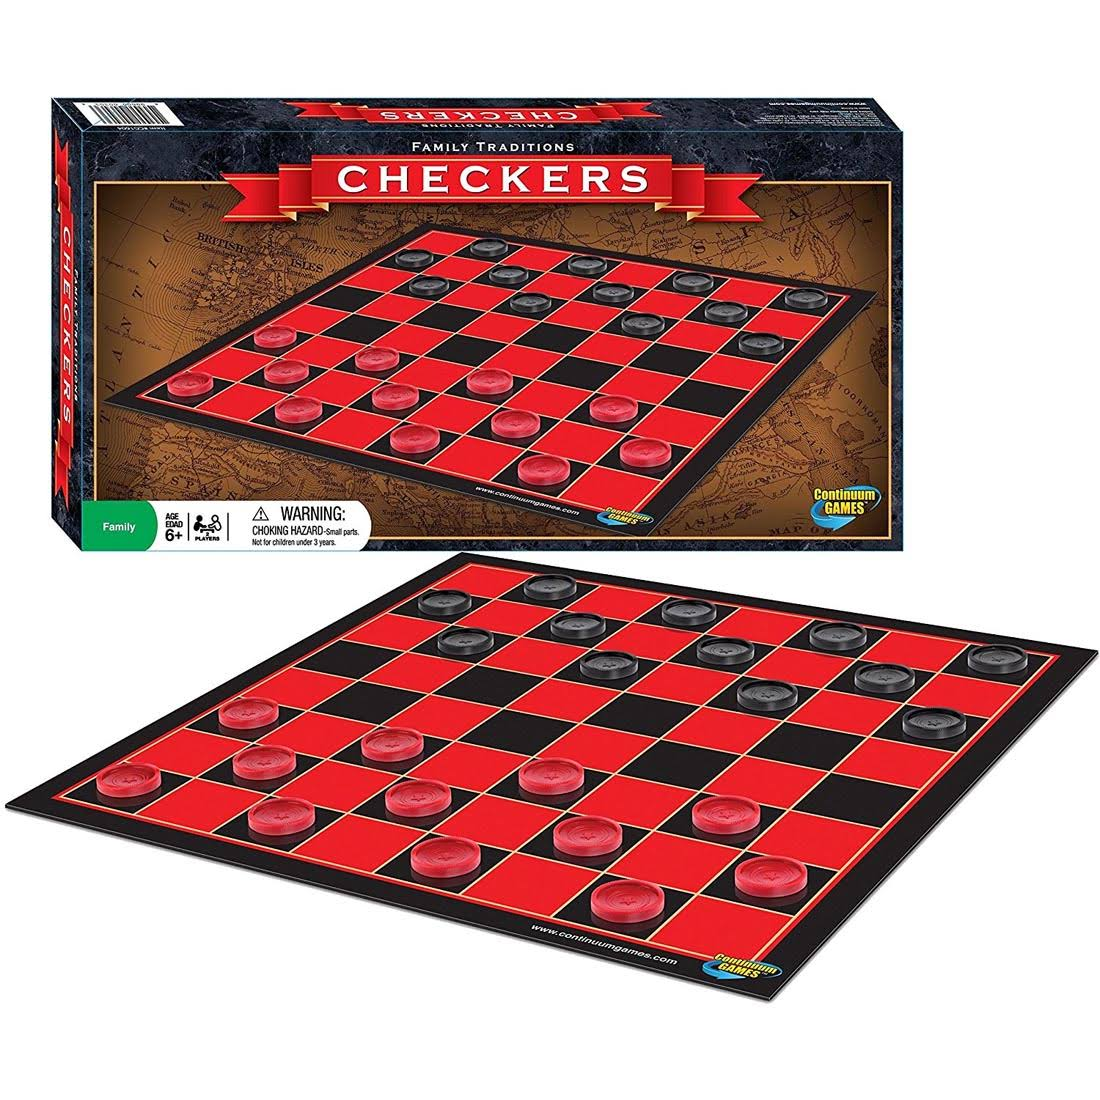 Continuum Games | Family Traditions Checkers Game